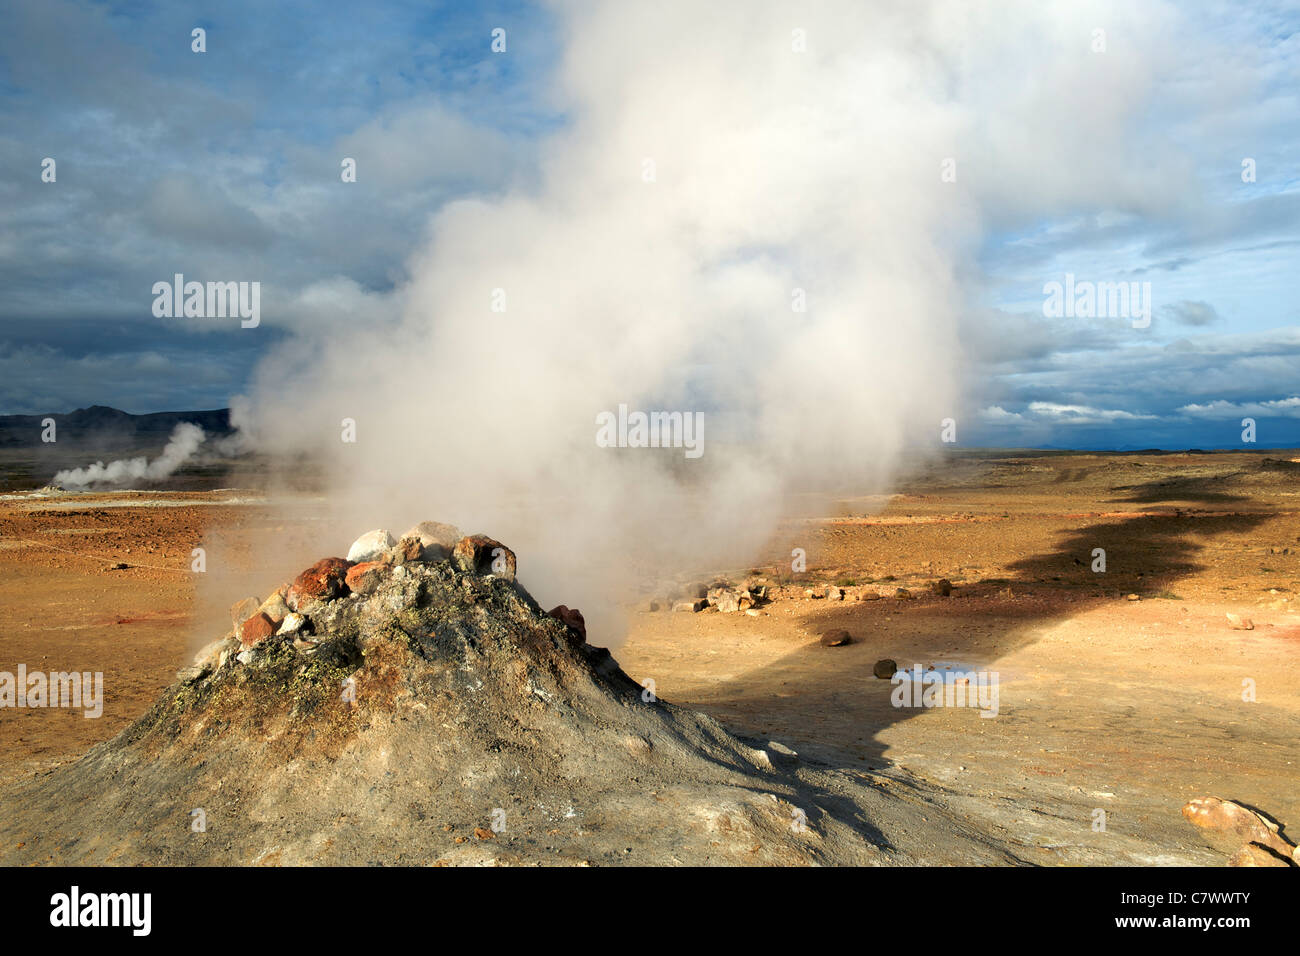 Steaming fumaroles (volcanic vents) at Hverir aka Hverarond east of Myvatn in northeast Iceland. - Stock Image